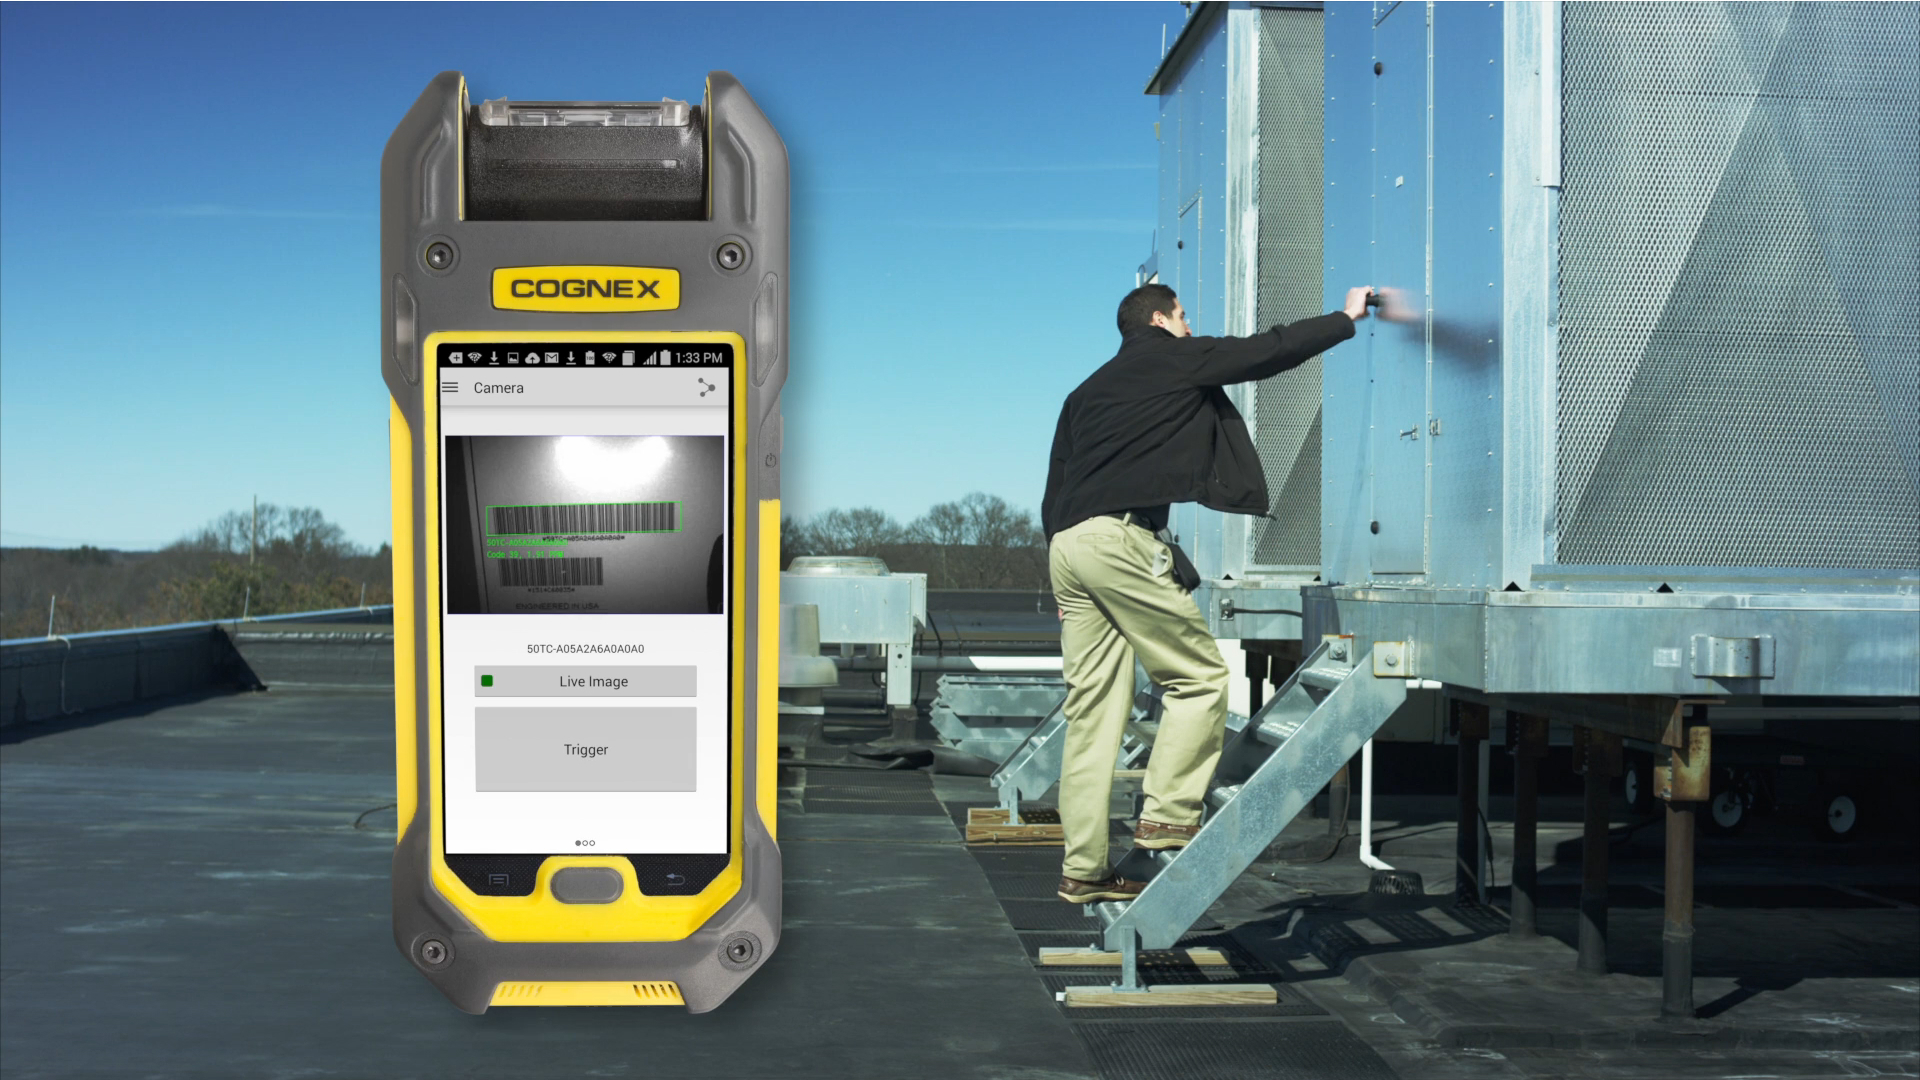 MX-1000 Vision-enabled Mobile Terminal for Field Service Applications